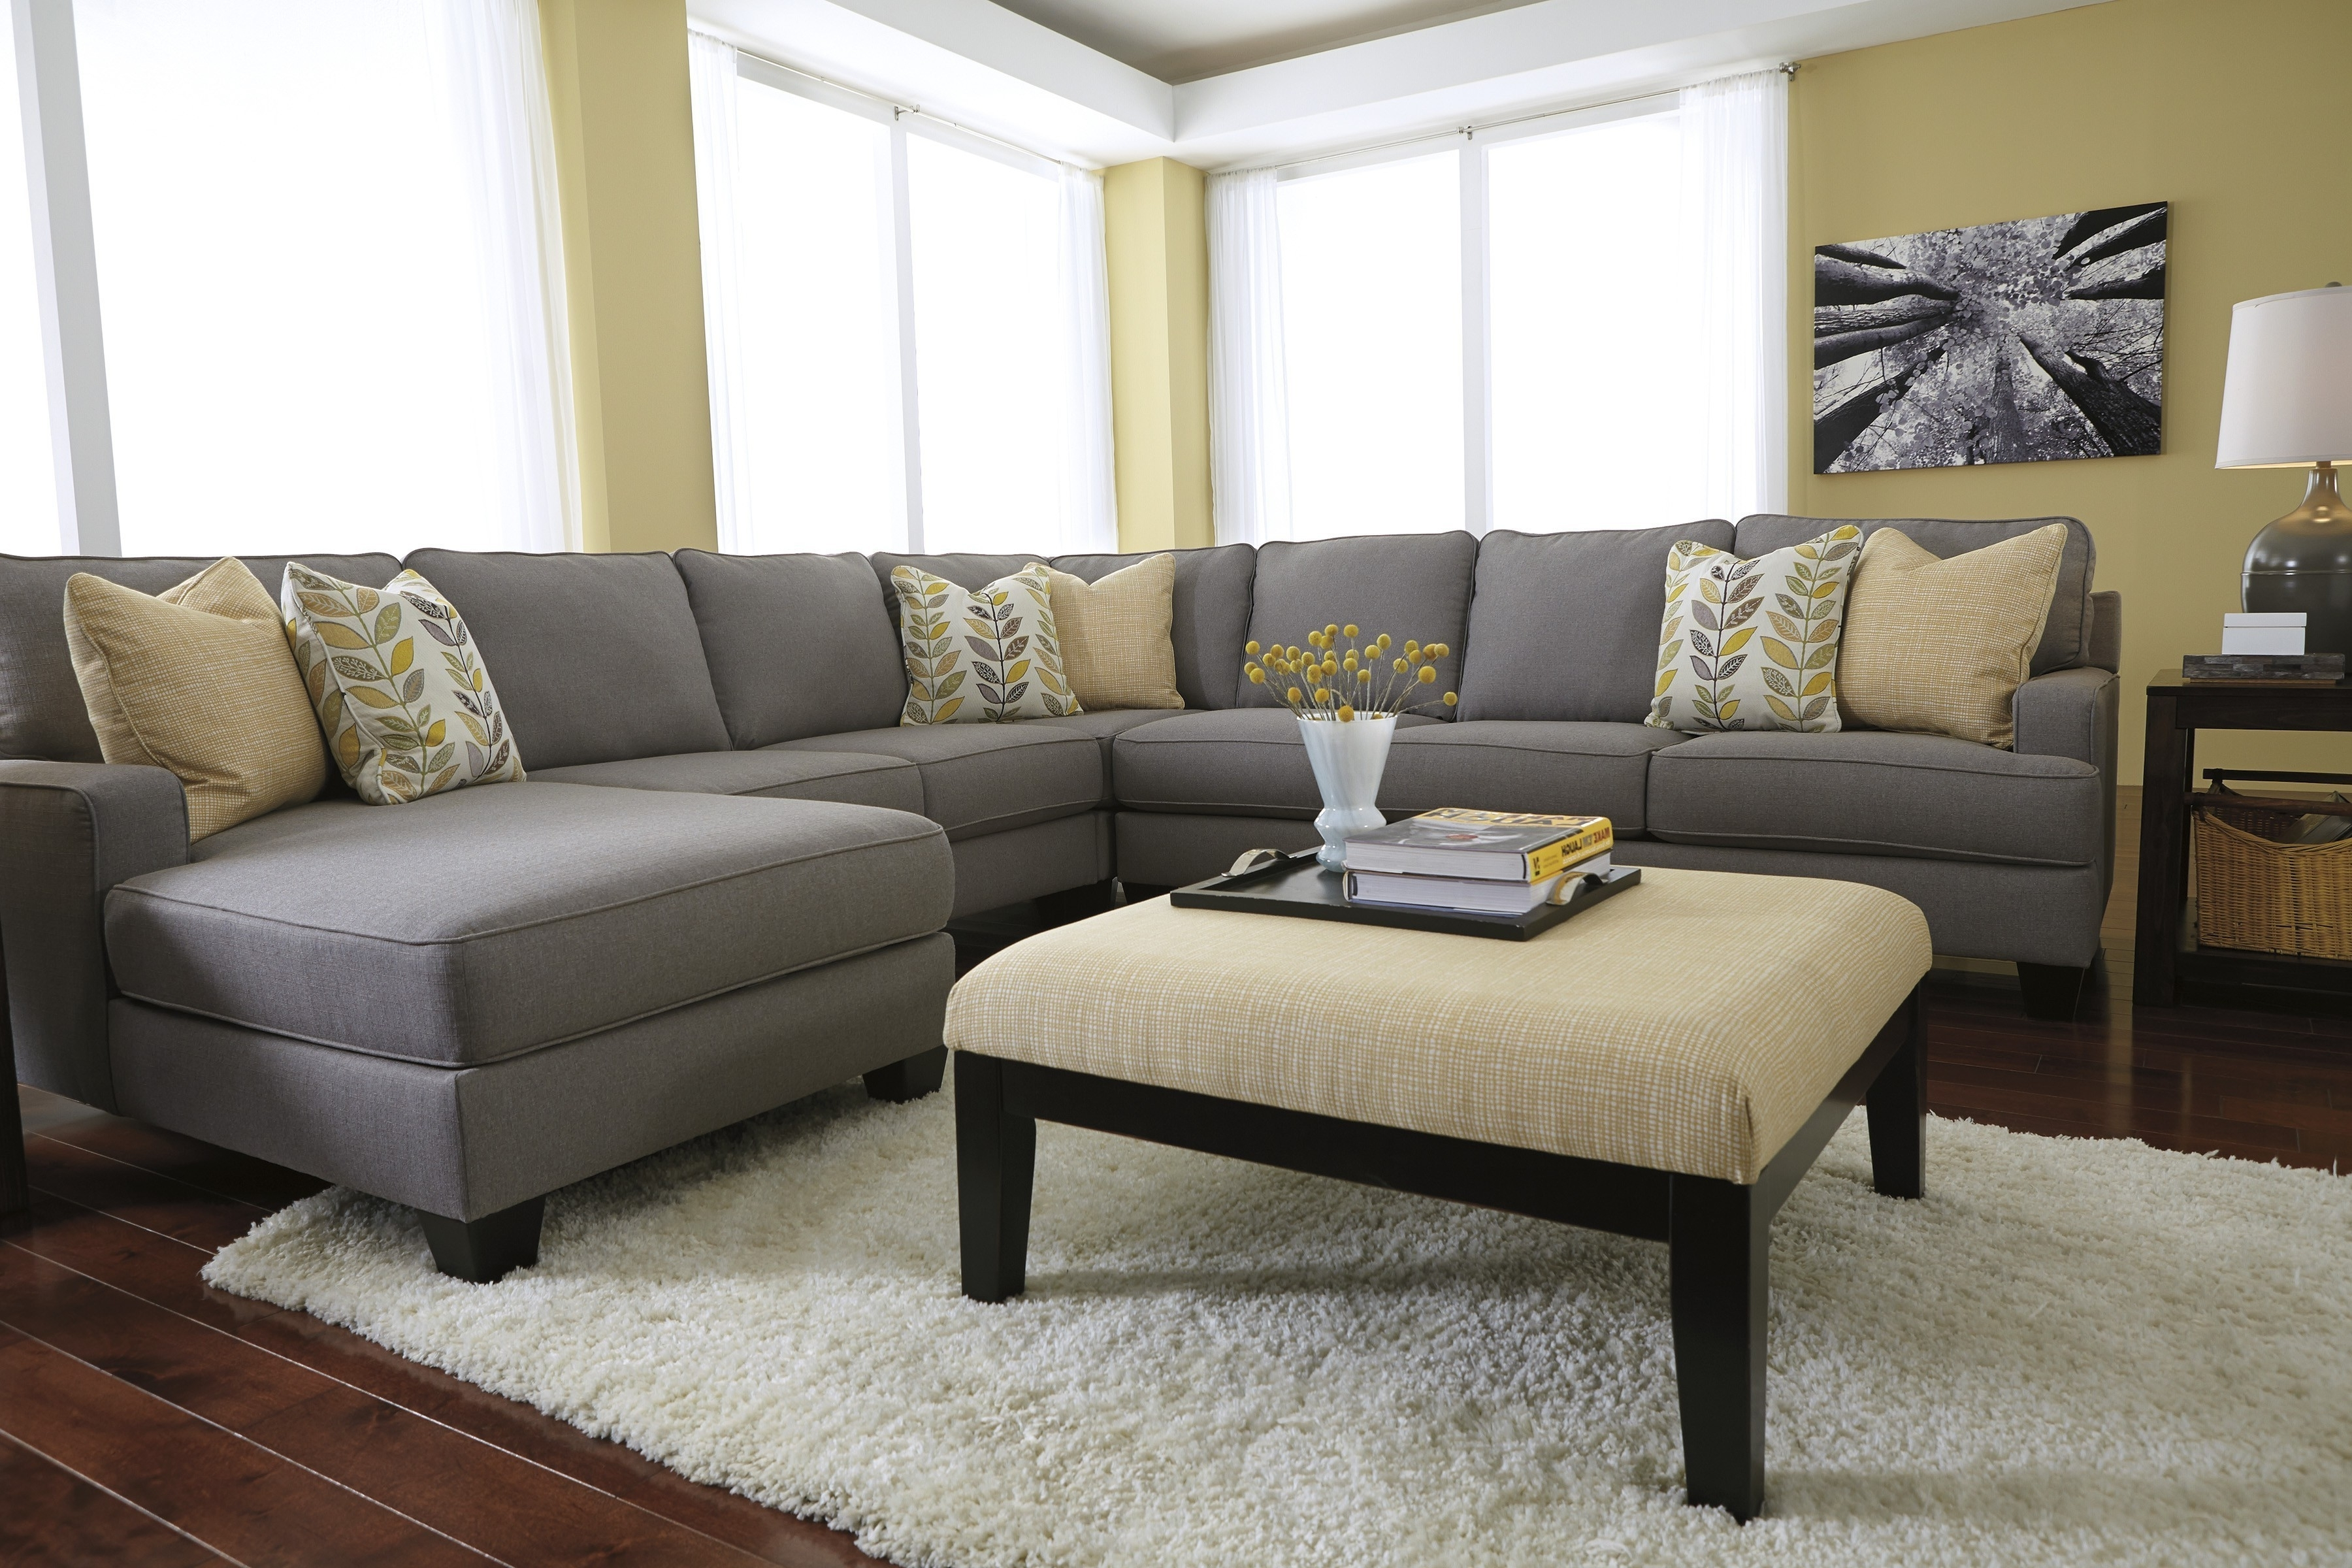 Fashionable Cool Perfect Light Grey Sectional Sofa 49 With Additional Small With Regard To Light Grey Sectional Sofas (View 2 of 20)